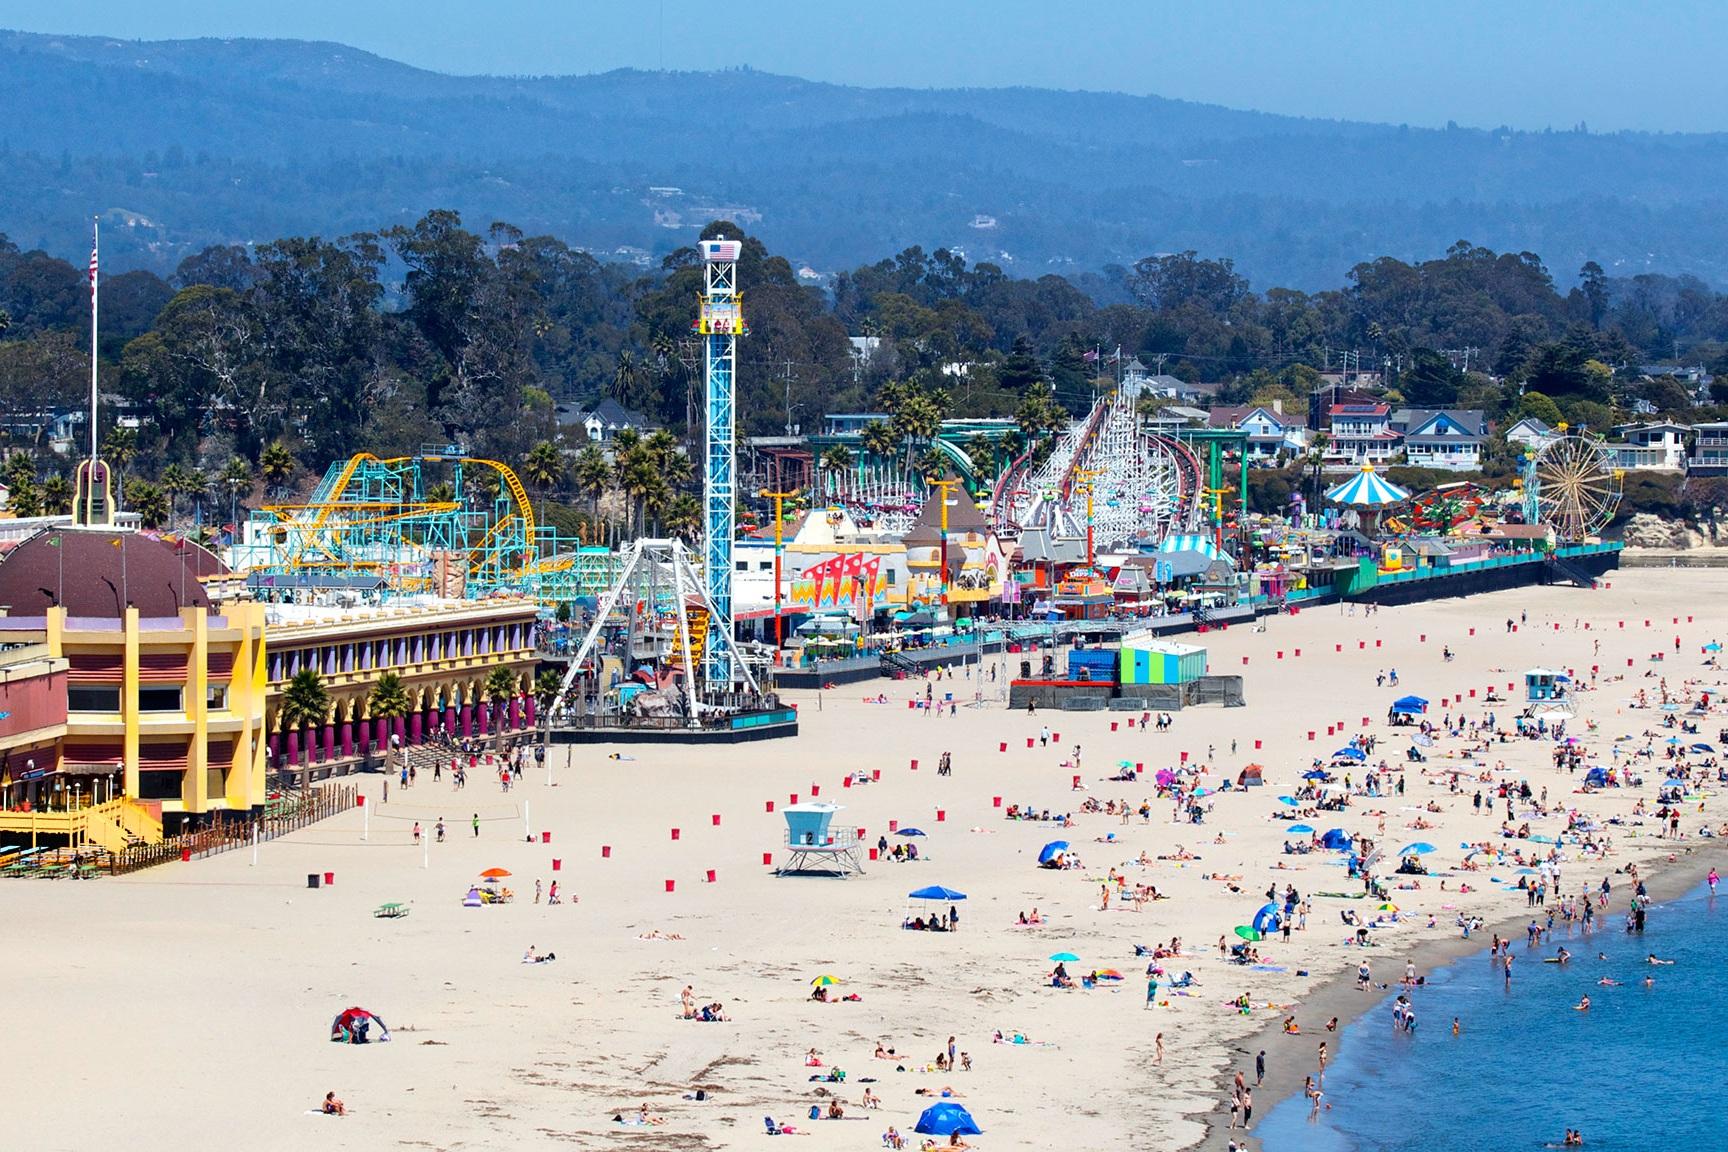 santa cruz beach boardwalk - You can't talk about the attractions of downtown Santa Cruz without mention the Beach Boardwalk, our own seaside amusement park. Aside from the rides and carnival snack foods, there's also an arcade, miniature golf, and a free summer concert series. The Boardwalk is home to two rides that have the designation of being a National Historic Landmark, the Giant Dipper and the Looff Carousel. The Giant Dipper is one of the oldest wooden roller coasters in the world that's still in operation, having been first built in 1924. The Looff Carousel is an old fashioned merry-go-round which first opened in 1911.